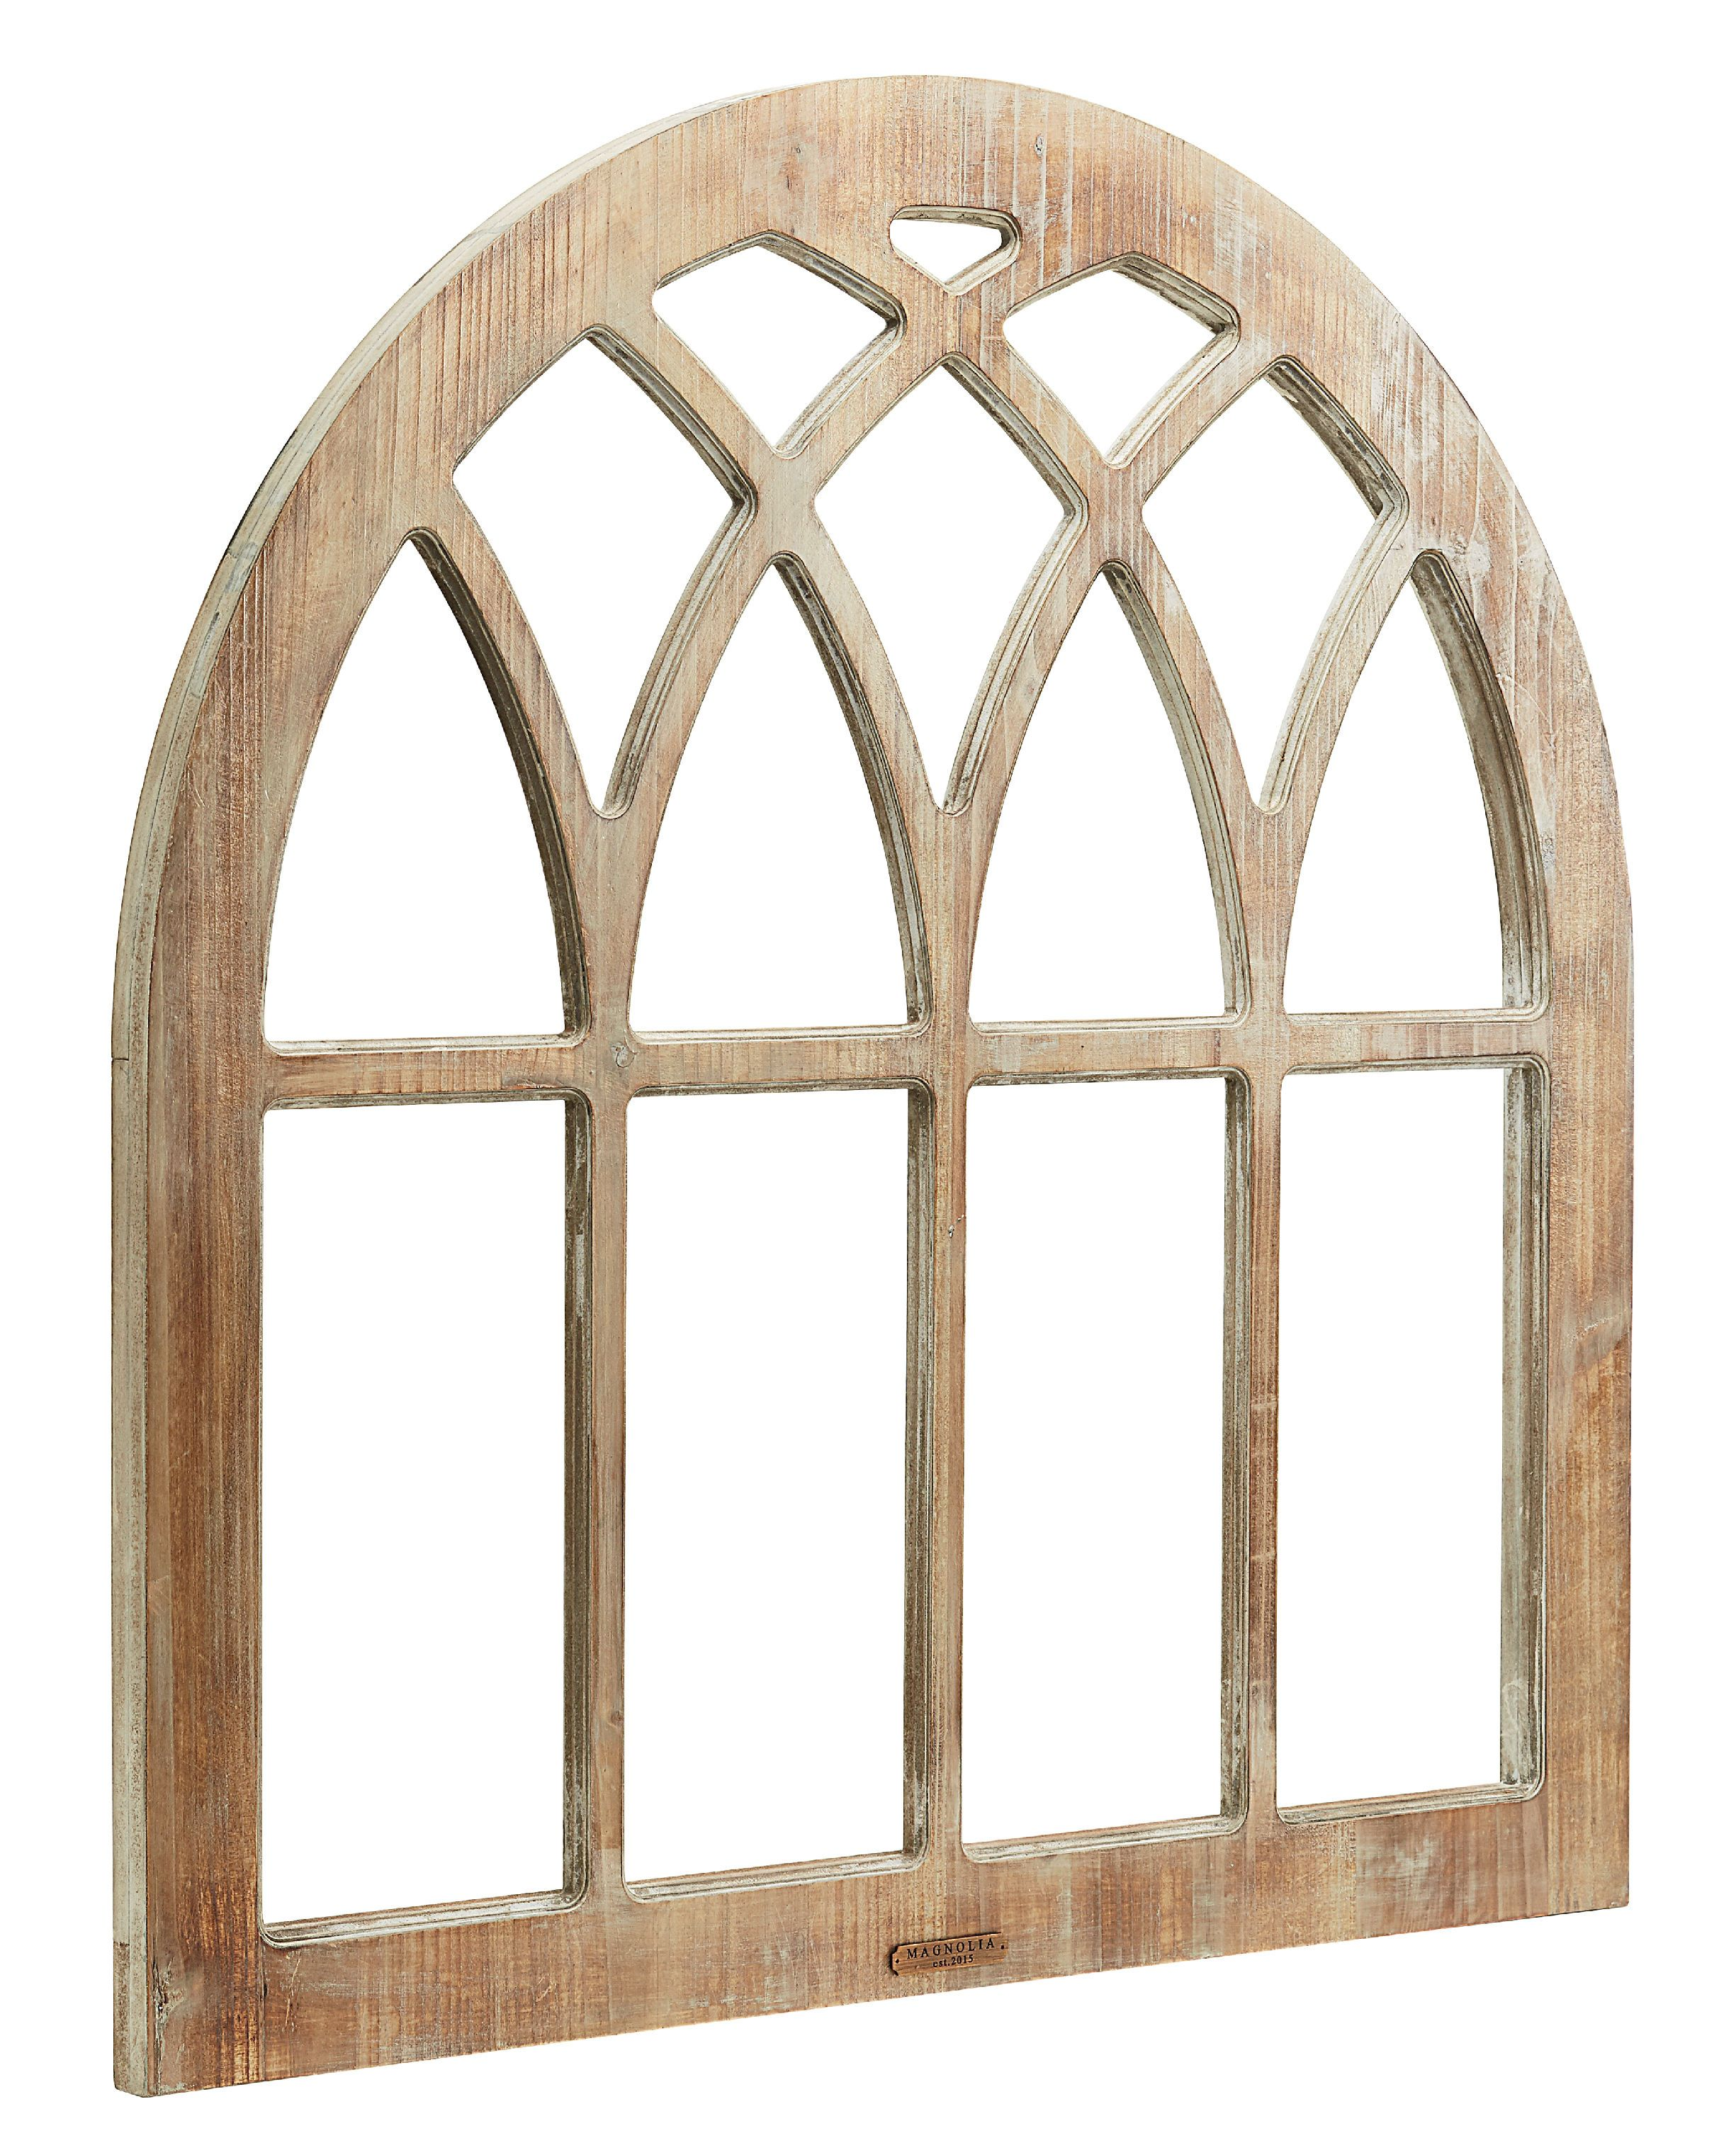 architectural antiques make great wall dcor and we found this gothic style cathedral window frame and knew it would work great as an eclectic piece of art - Window Frame Wall Art